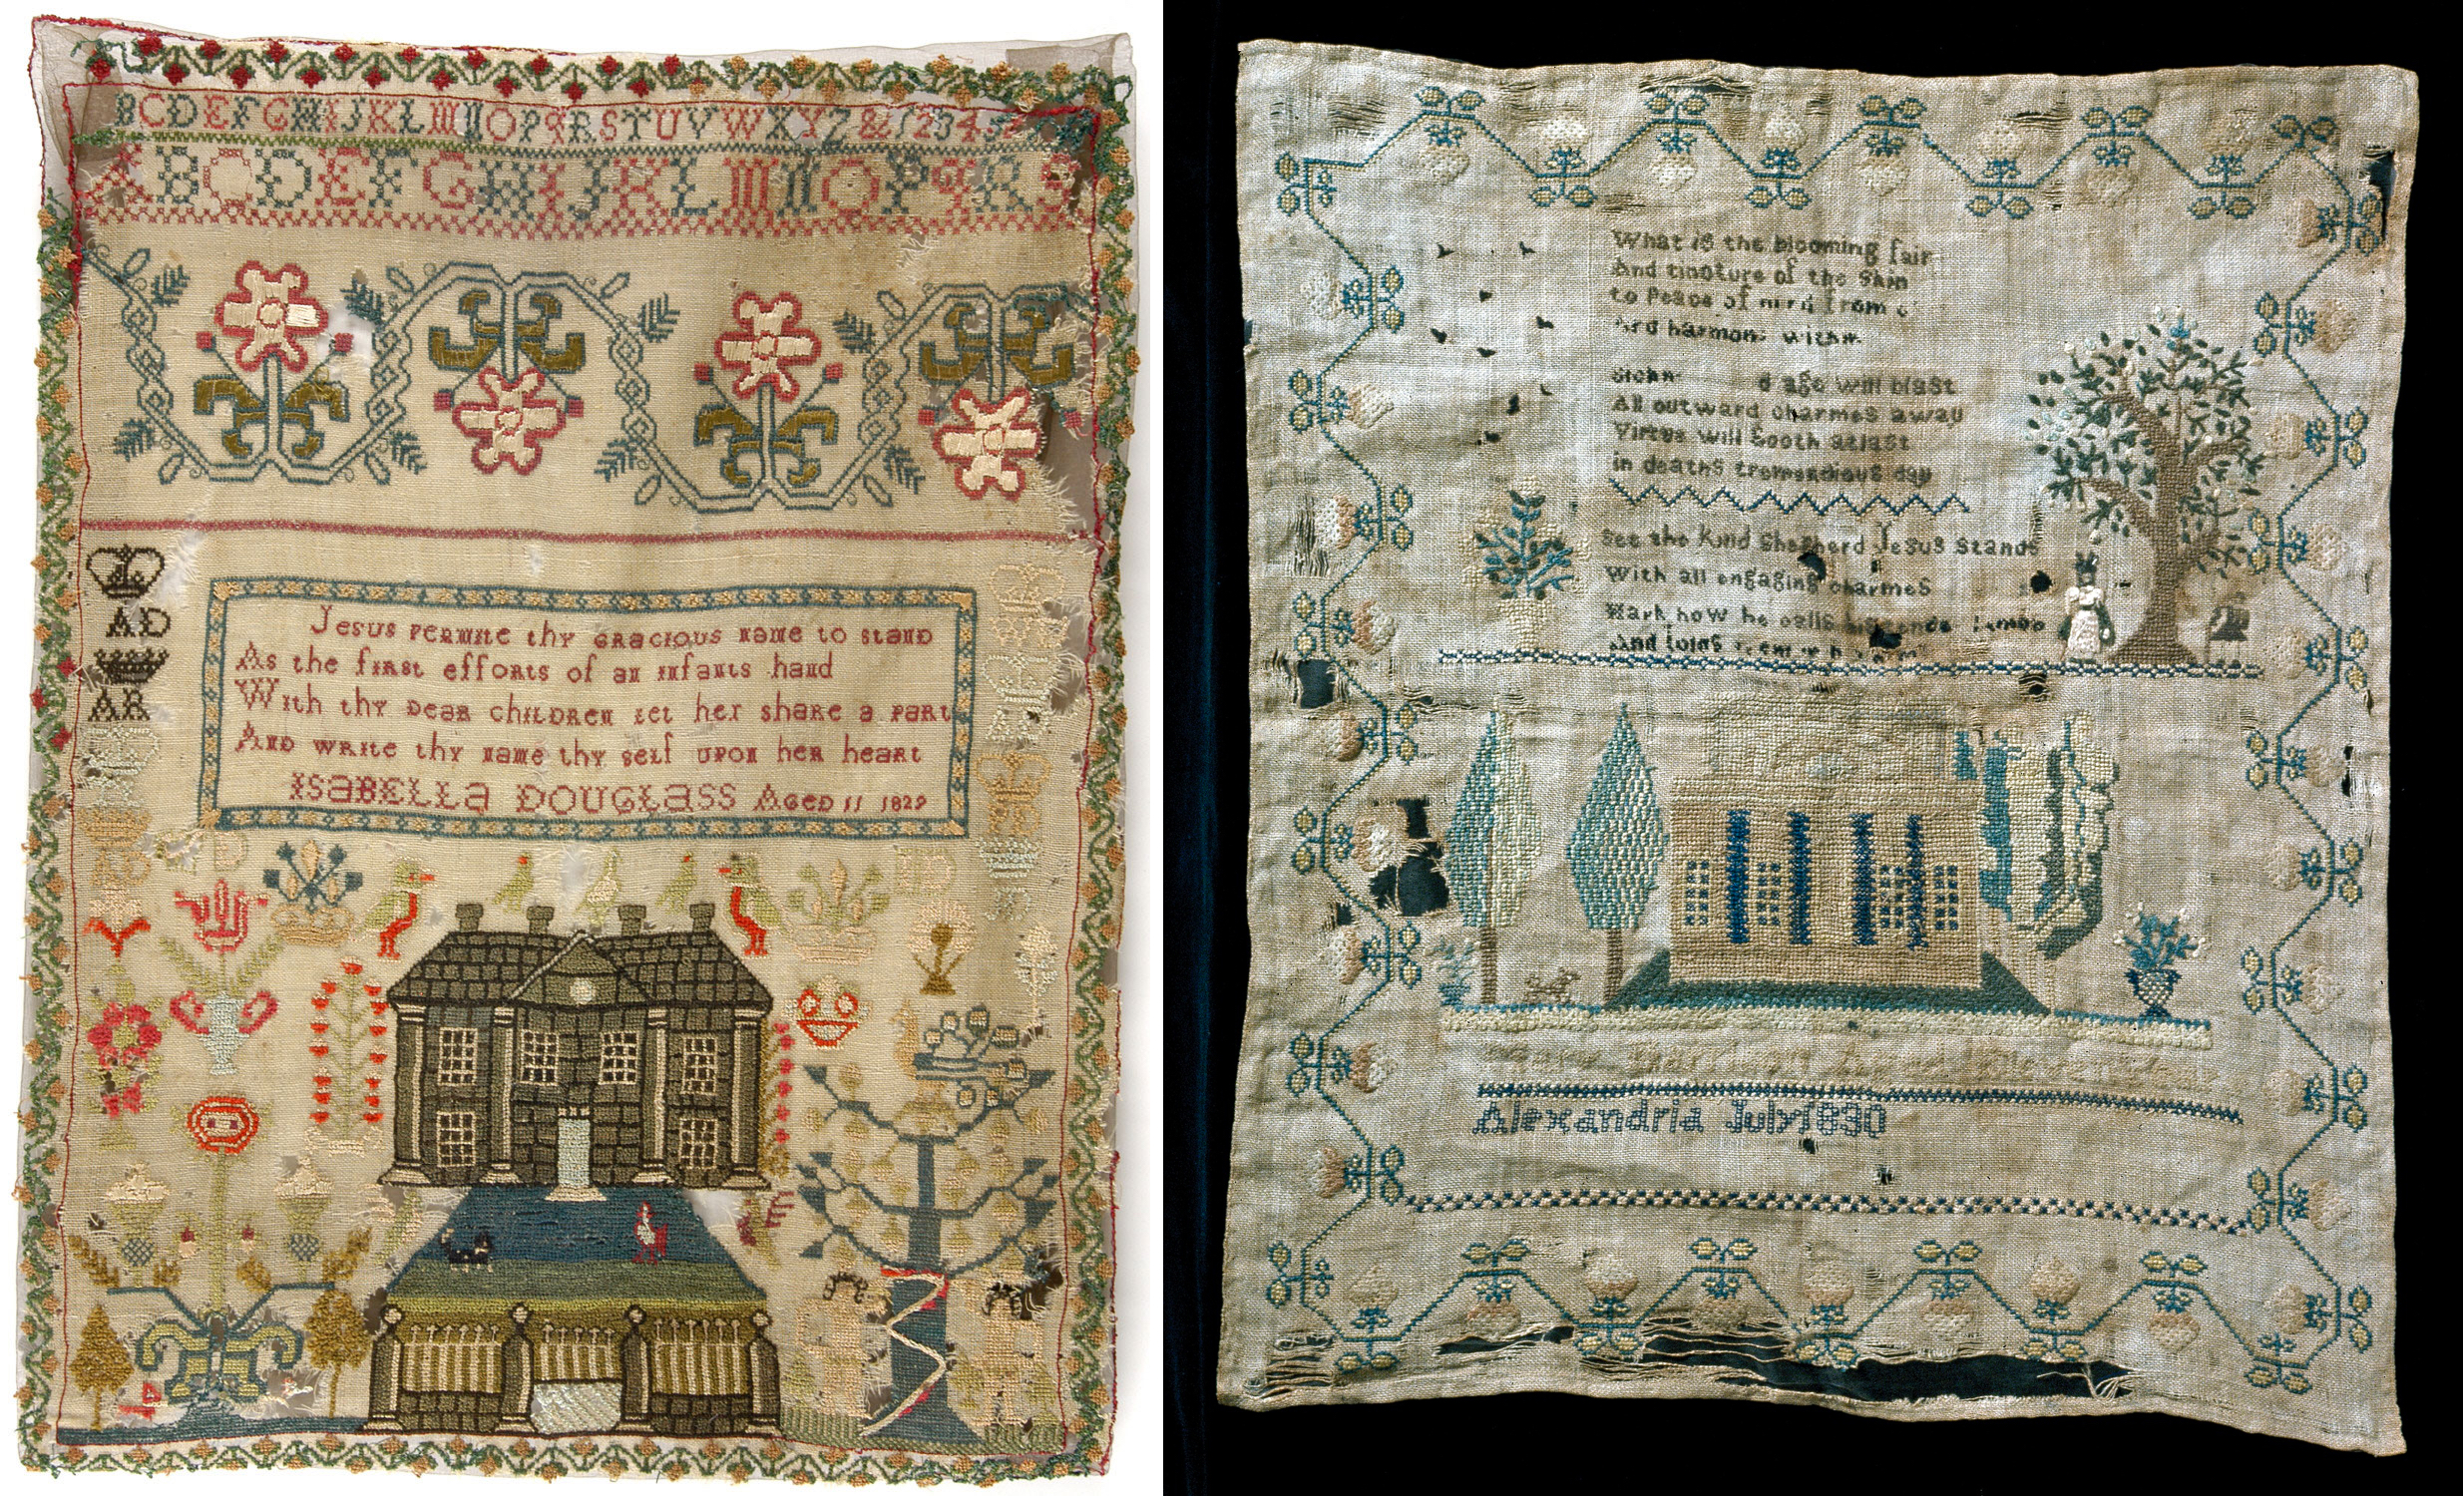 Left:    Isabella Douglas sampler  (1829, Midlothian, Scotland) at the Philadelphia Museum of Art. This sampler has a beautiful house and gardens   and   an Adam and Eve! I love the four crowns surrounding the verse.   Right:    Mary Harrison sampler  (1830, Alexandria, Virginia) at the National Museum of American History. These were stitched around the same time on two completely different continents, and they're so similar! I like to think, however, that Mary Harrison's looks distinctly American.